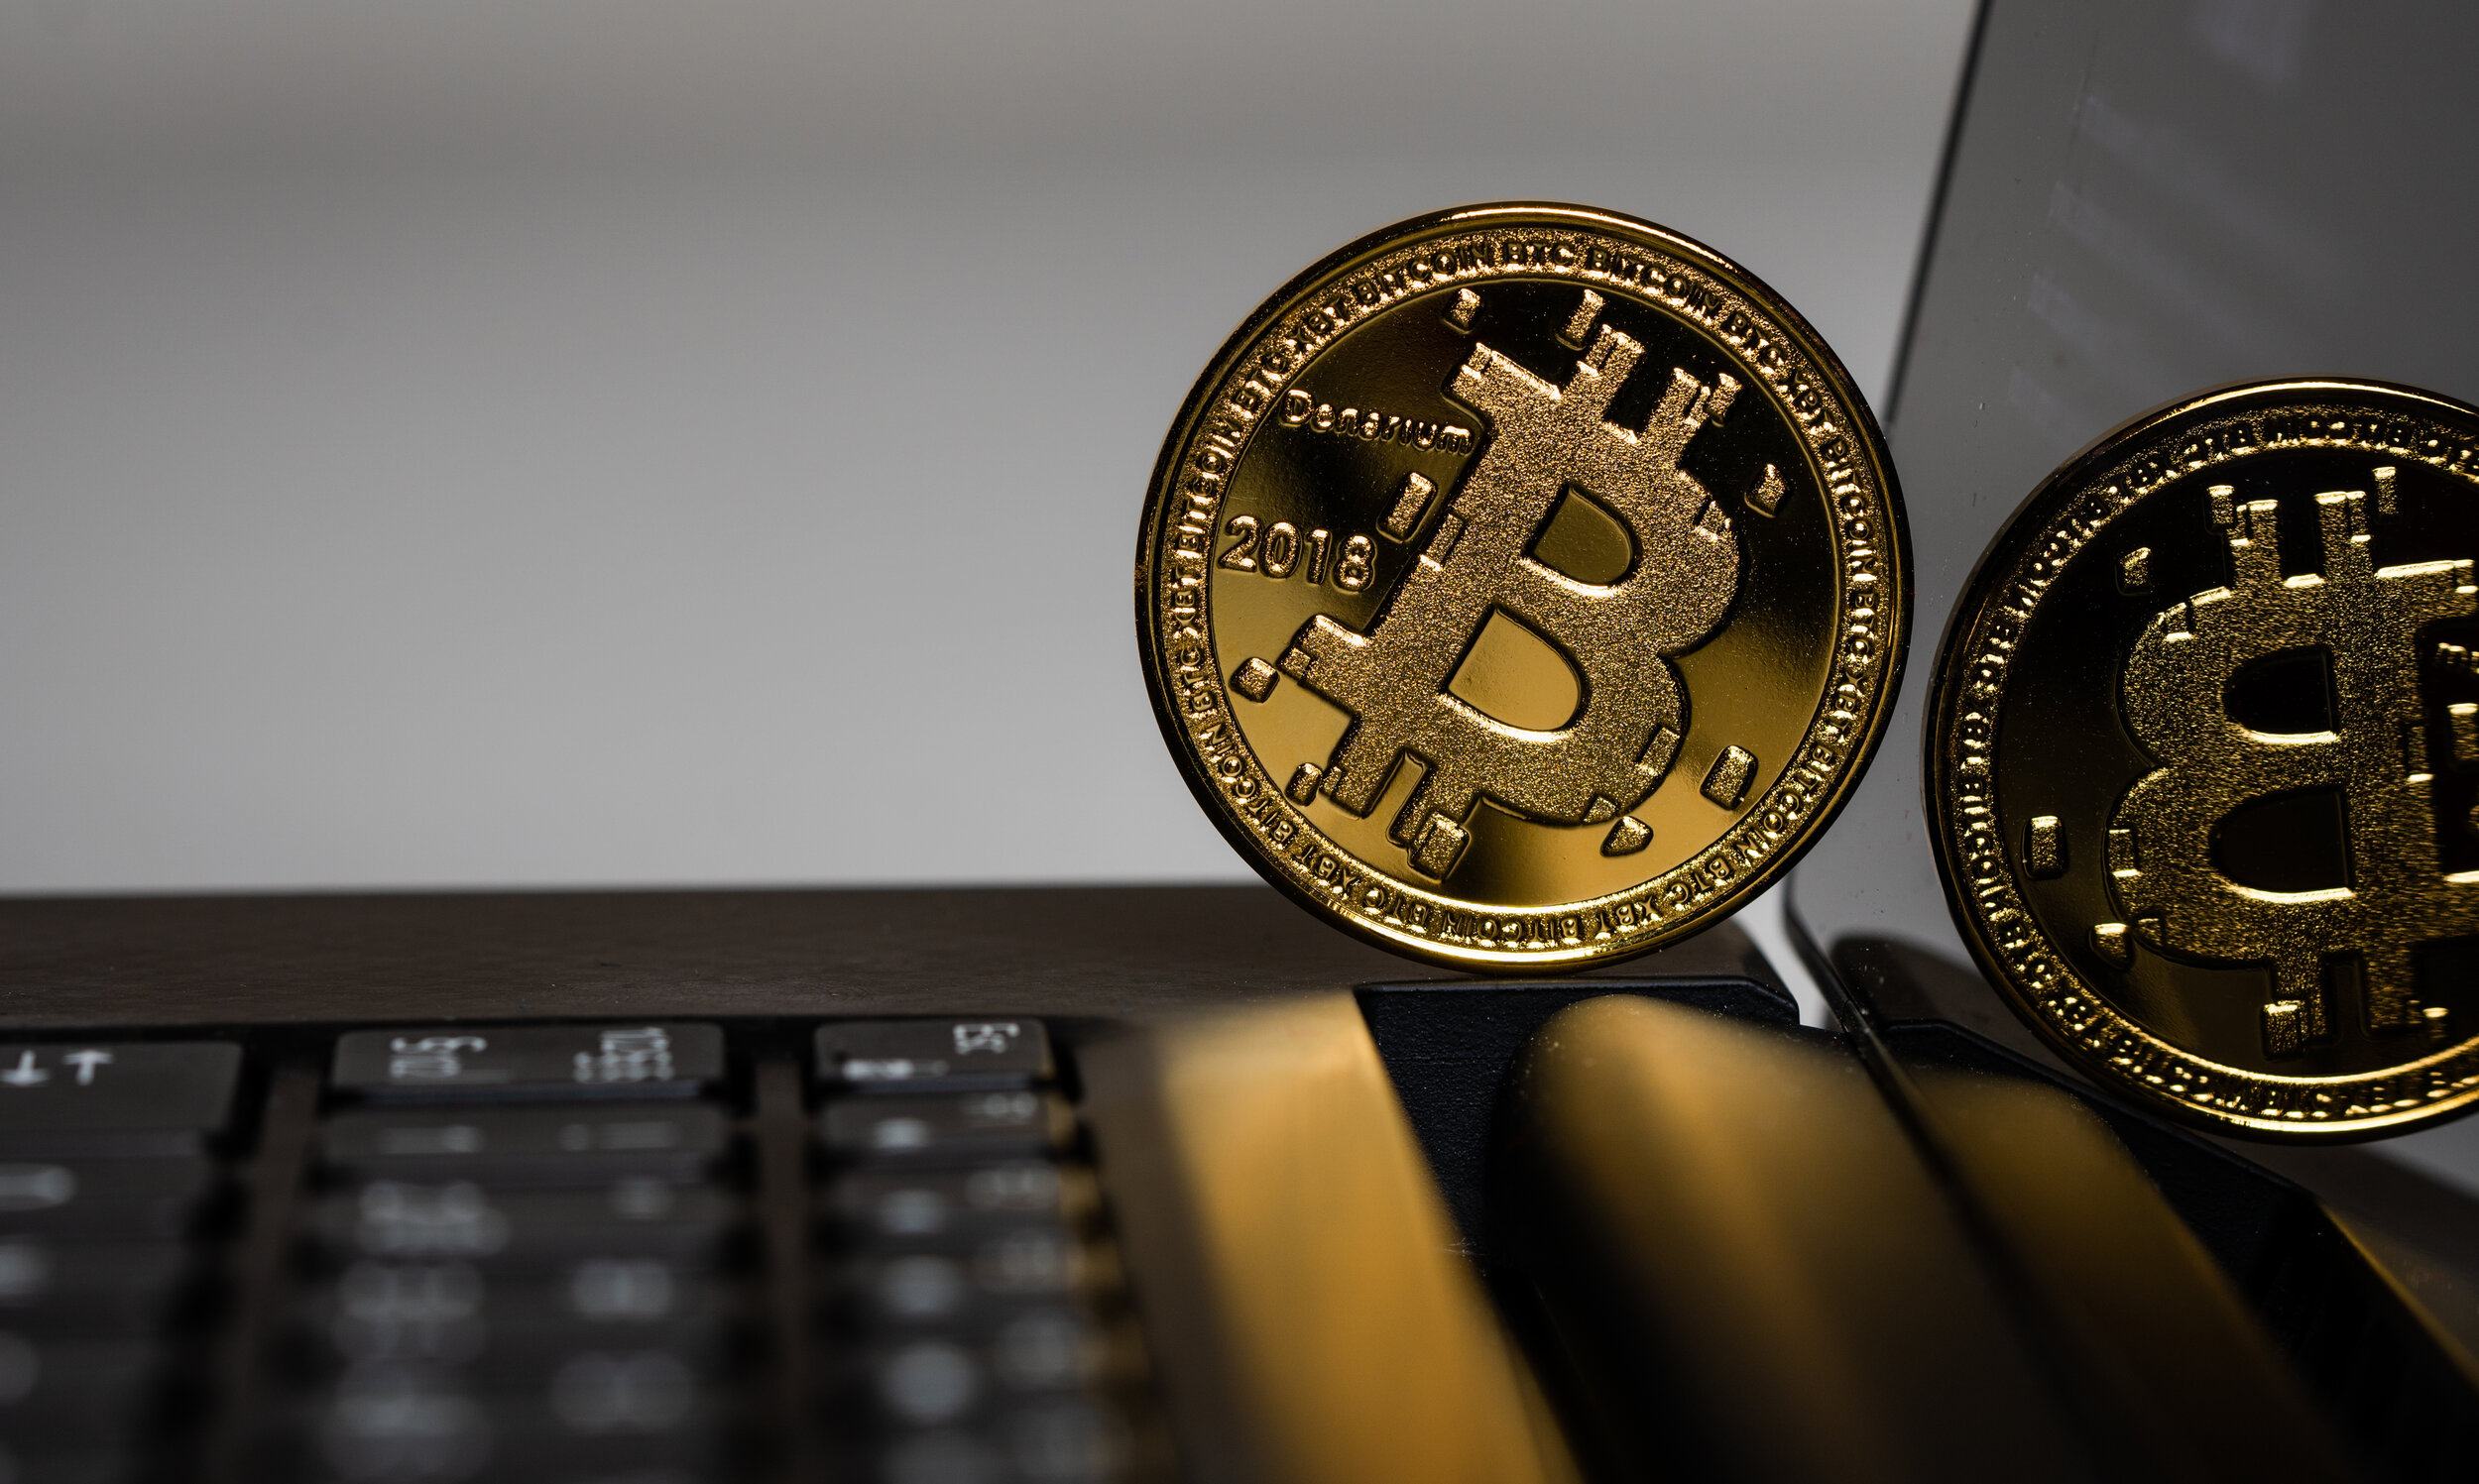 Virtual currency: IRS issues additional guidance on tax treatment and reminds taxpayers of reporting obligations